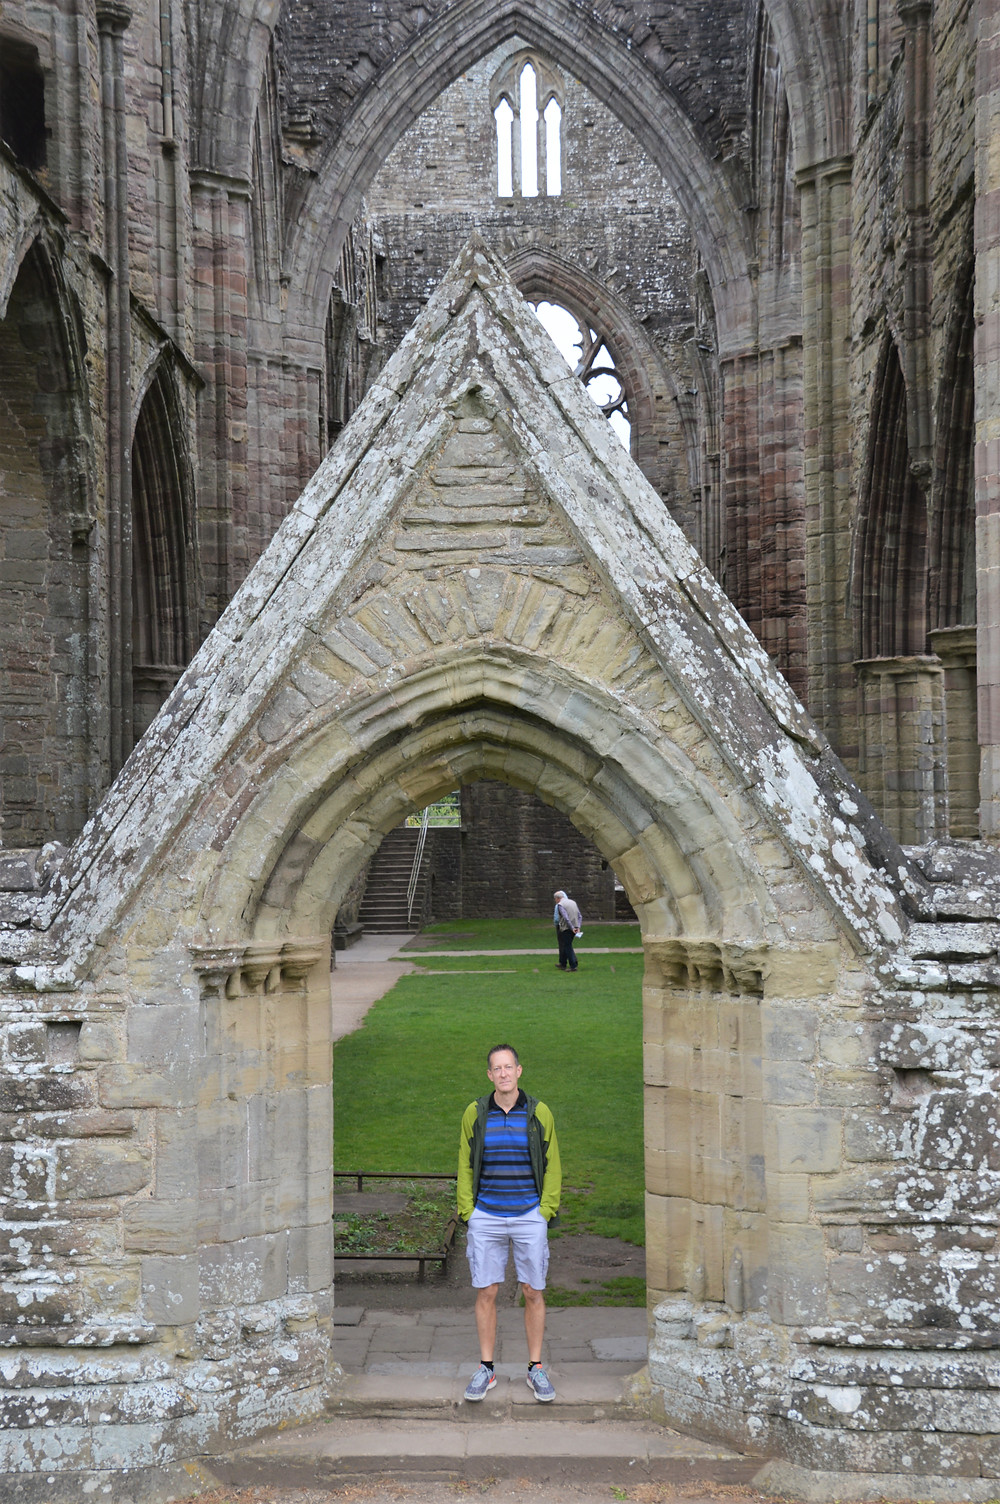 Remains of the north entrance to Tintern Abbey in South Wales